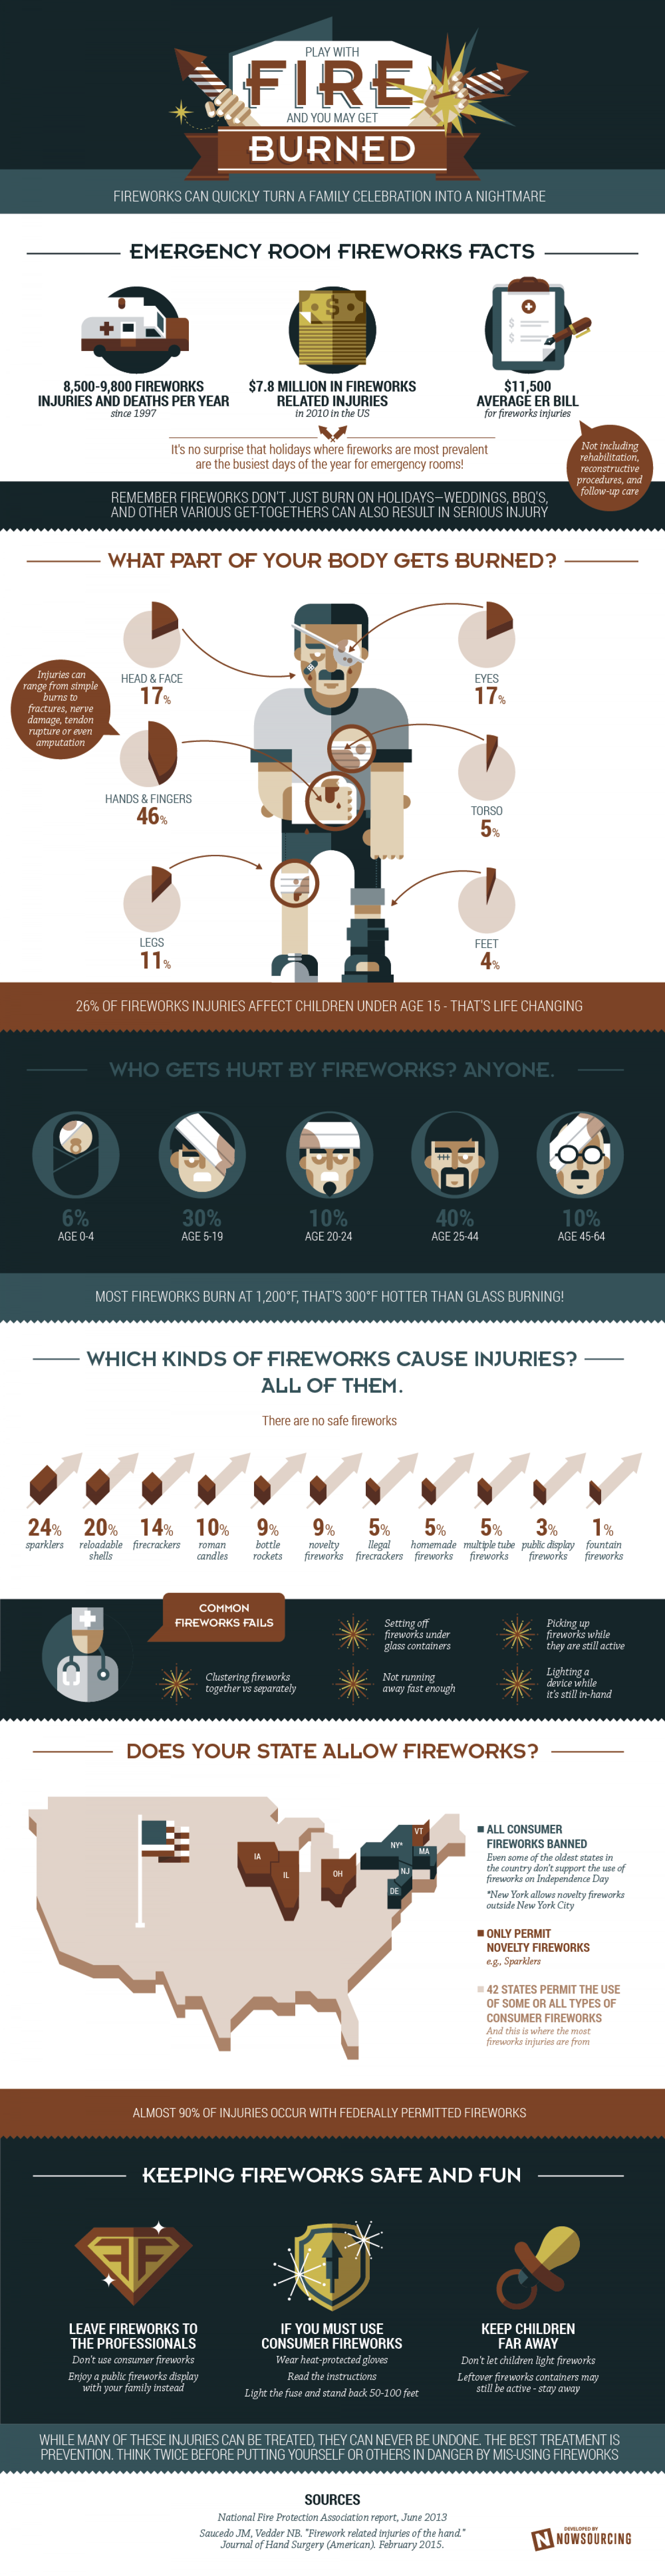 All Fireworks Can Cause Injuries Infographic